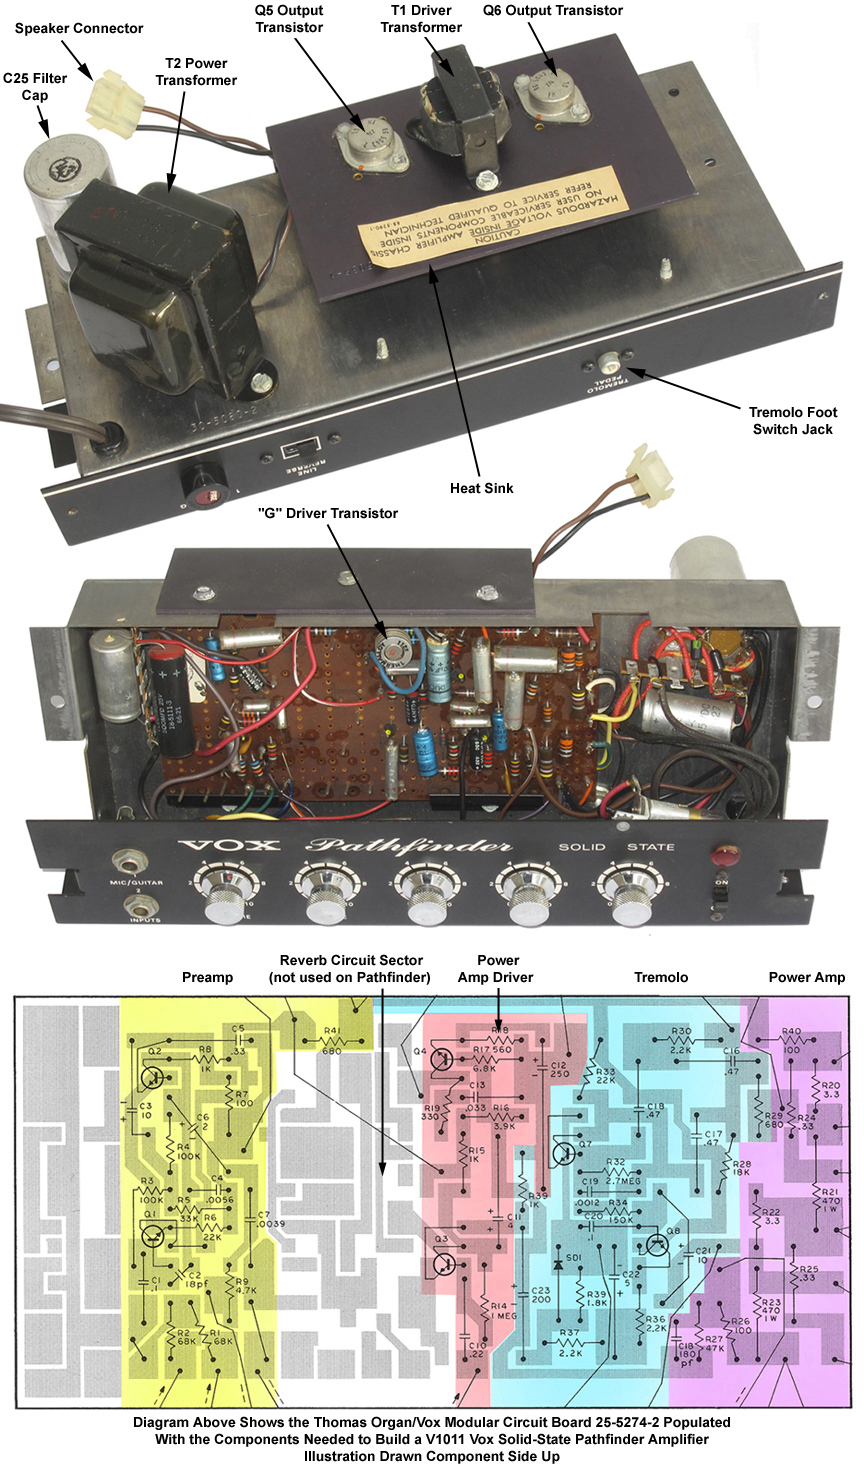 The Vox Showroom V1011 Pathfinder Solid State Amplifiers Amplifier Circuit Board Design A Look Under Hood